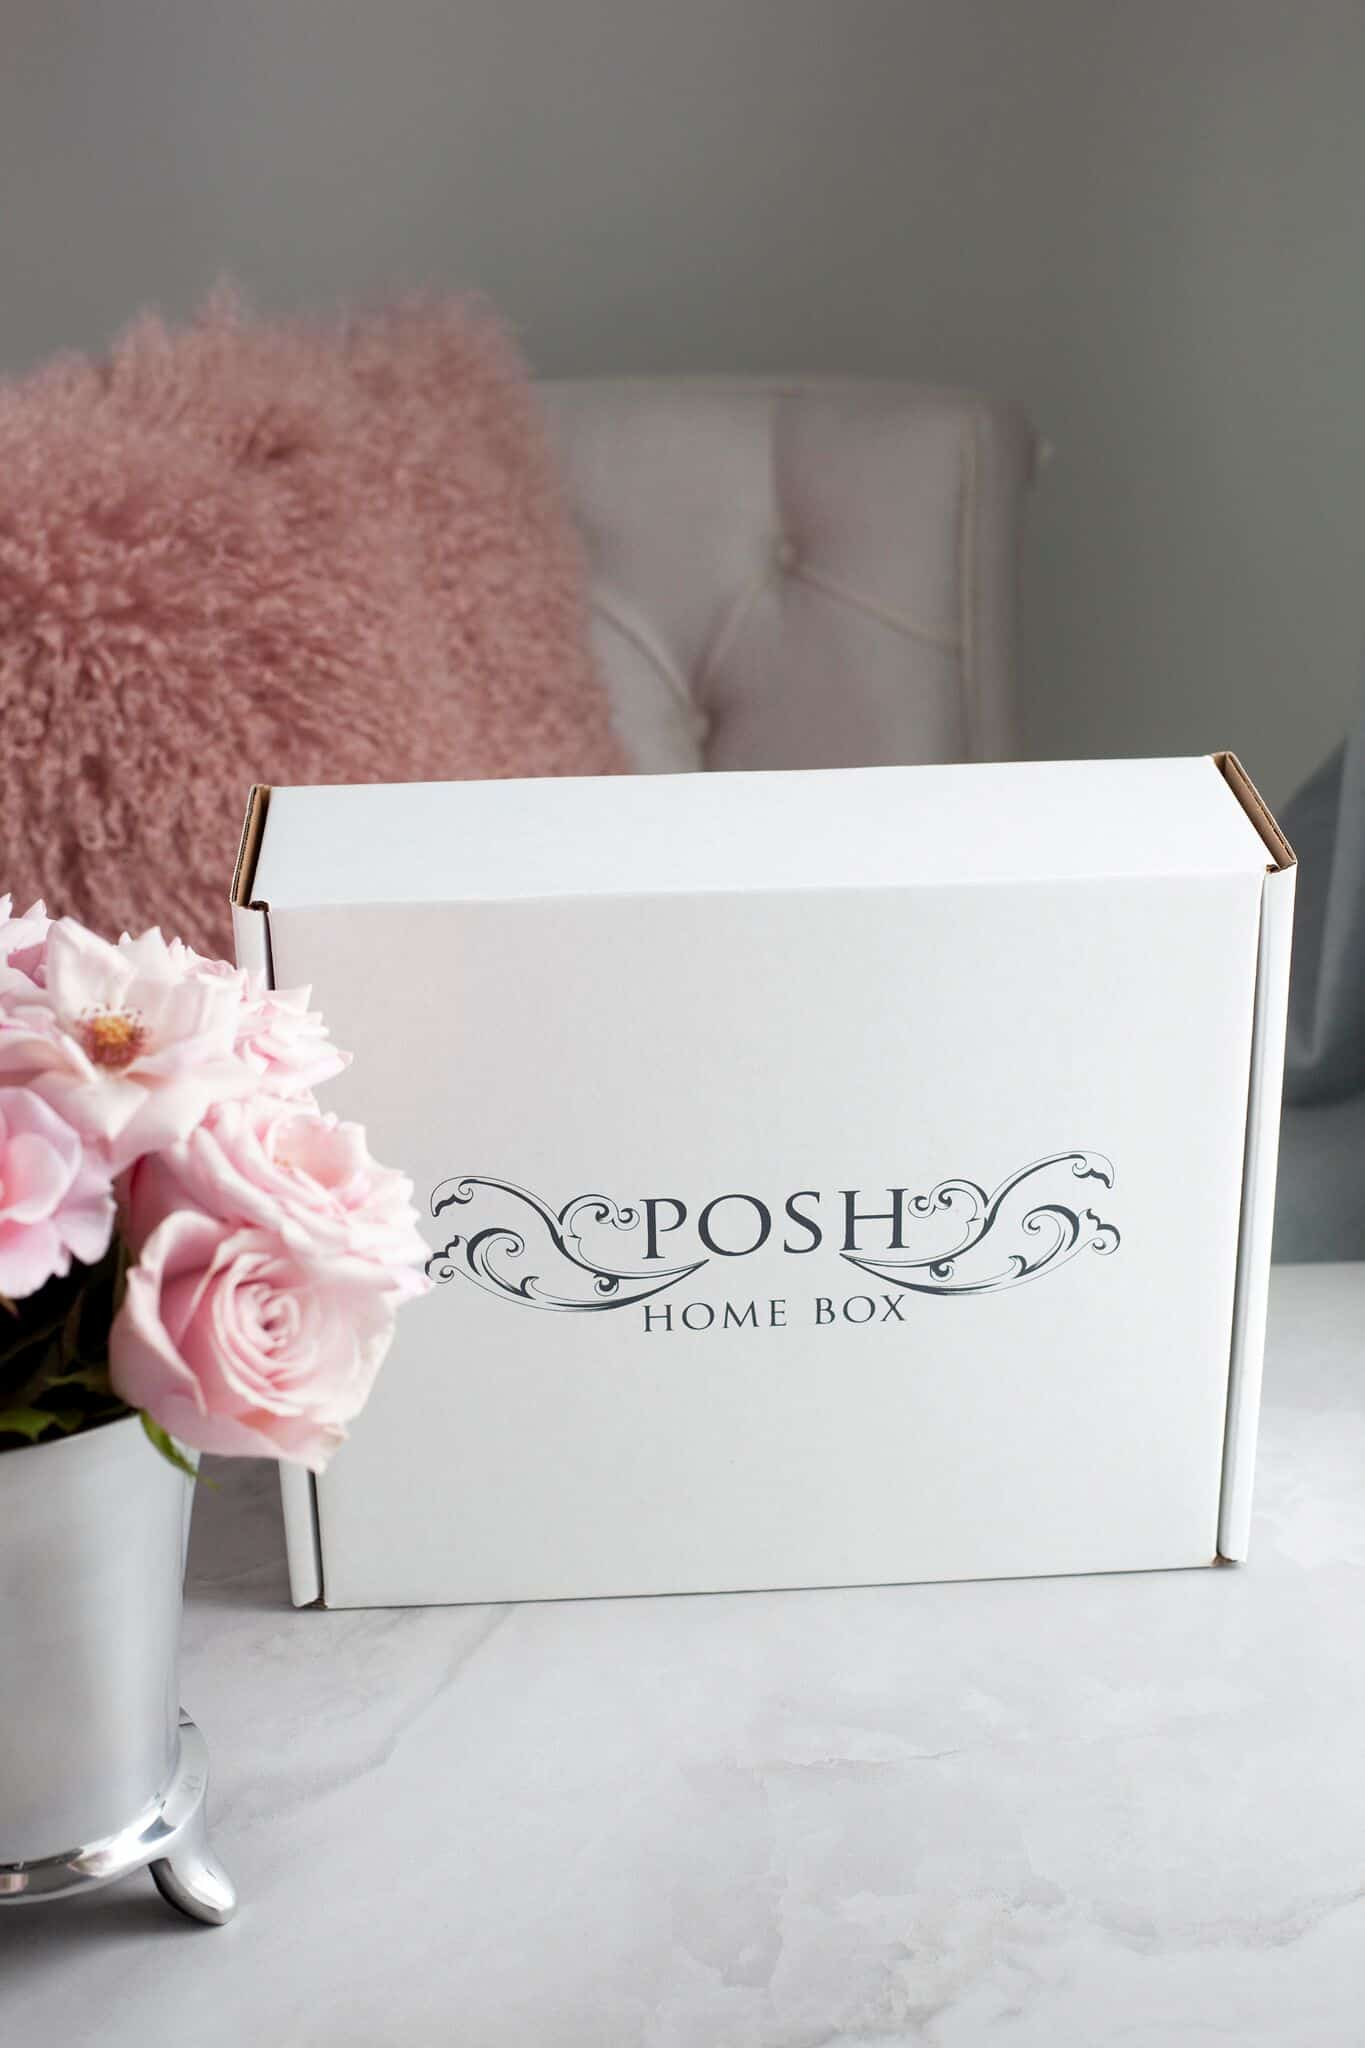 Posh Home Box 2017 Black Friday Deal: Take $7 off your subscription box!